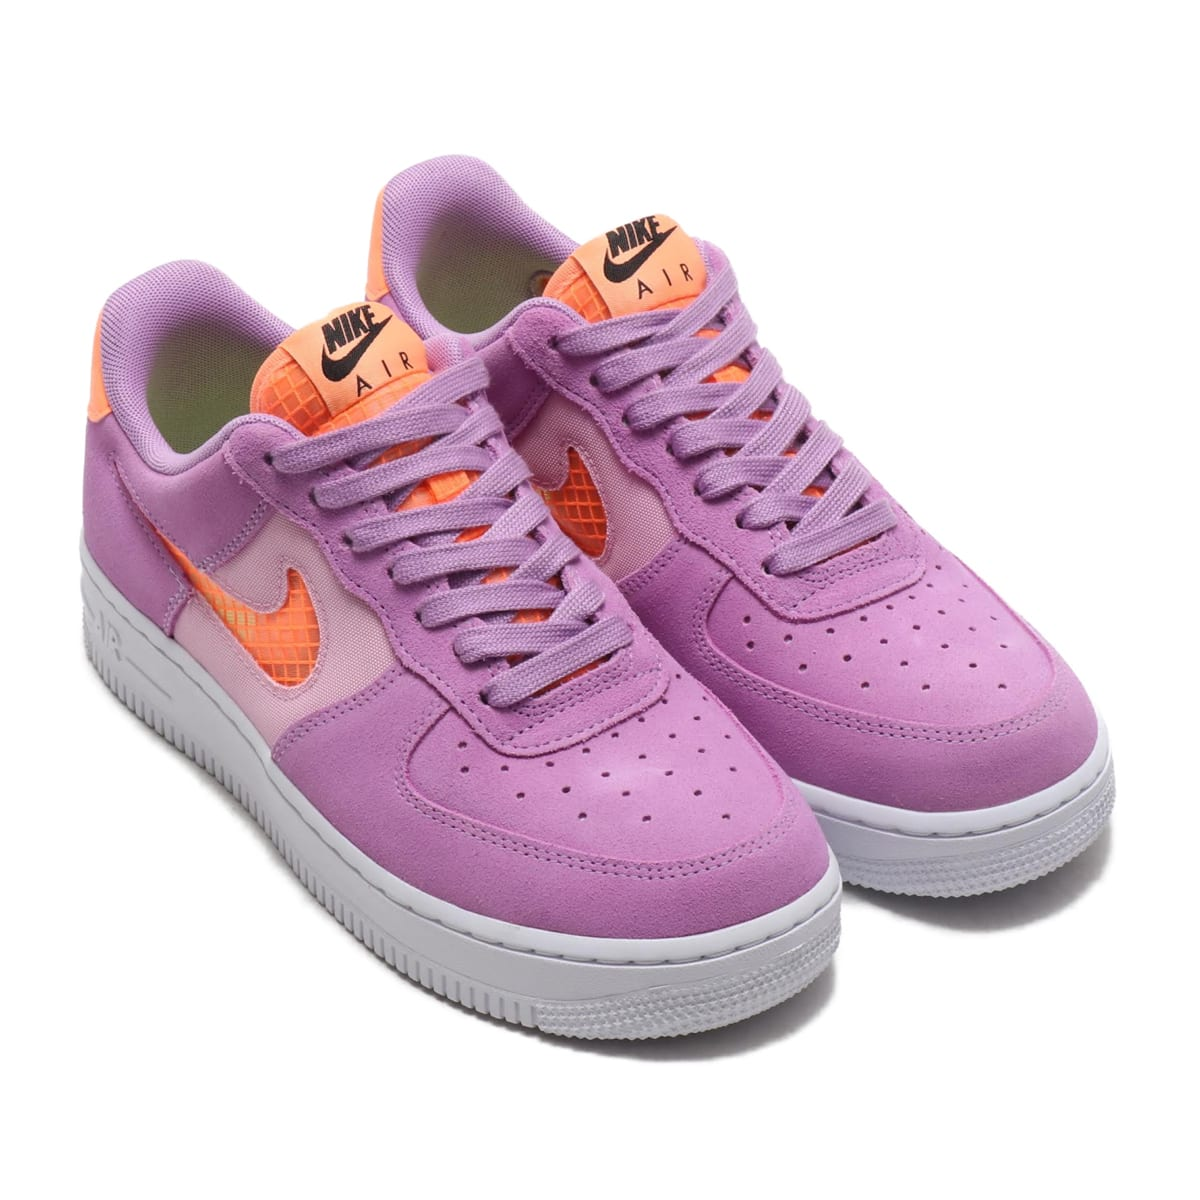 NIKE WMNS AIR FORCE 1 '07 SE VIOLET STAR/ORANGE PULSE-LT ARCTIC PINK 20SU-I_photo_large